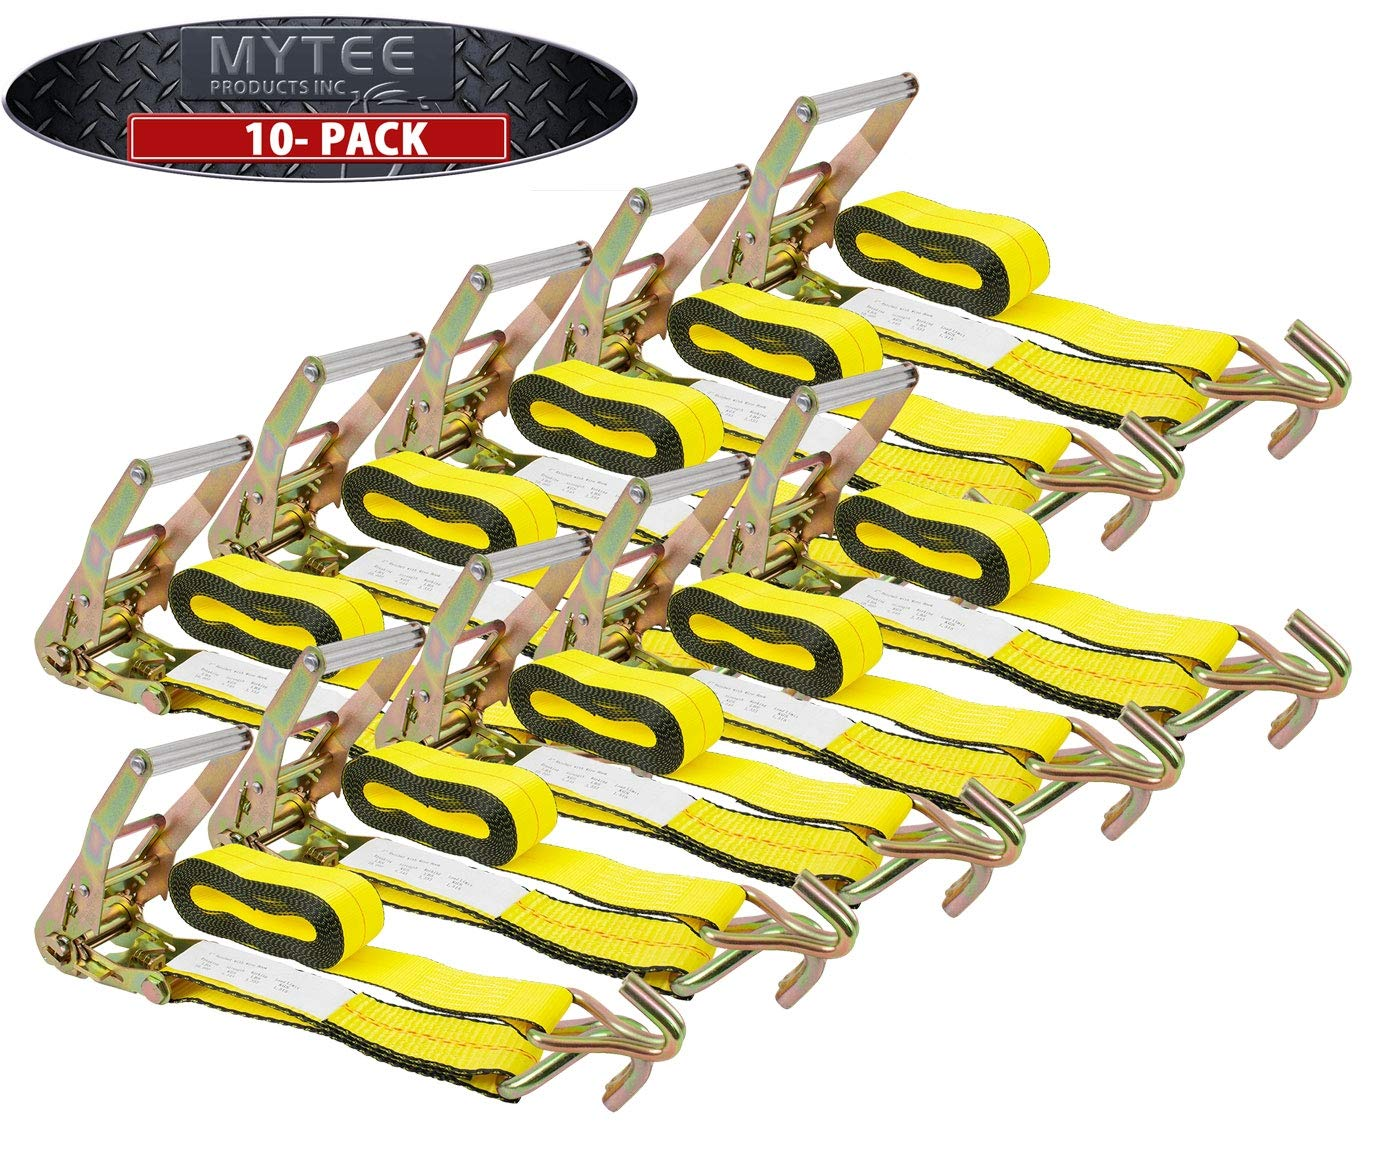 Mytee Products (10 Pack) 2'' X30' Ratchet Straps w/Wire Hook, WLL 3335 Tie Down Strap